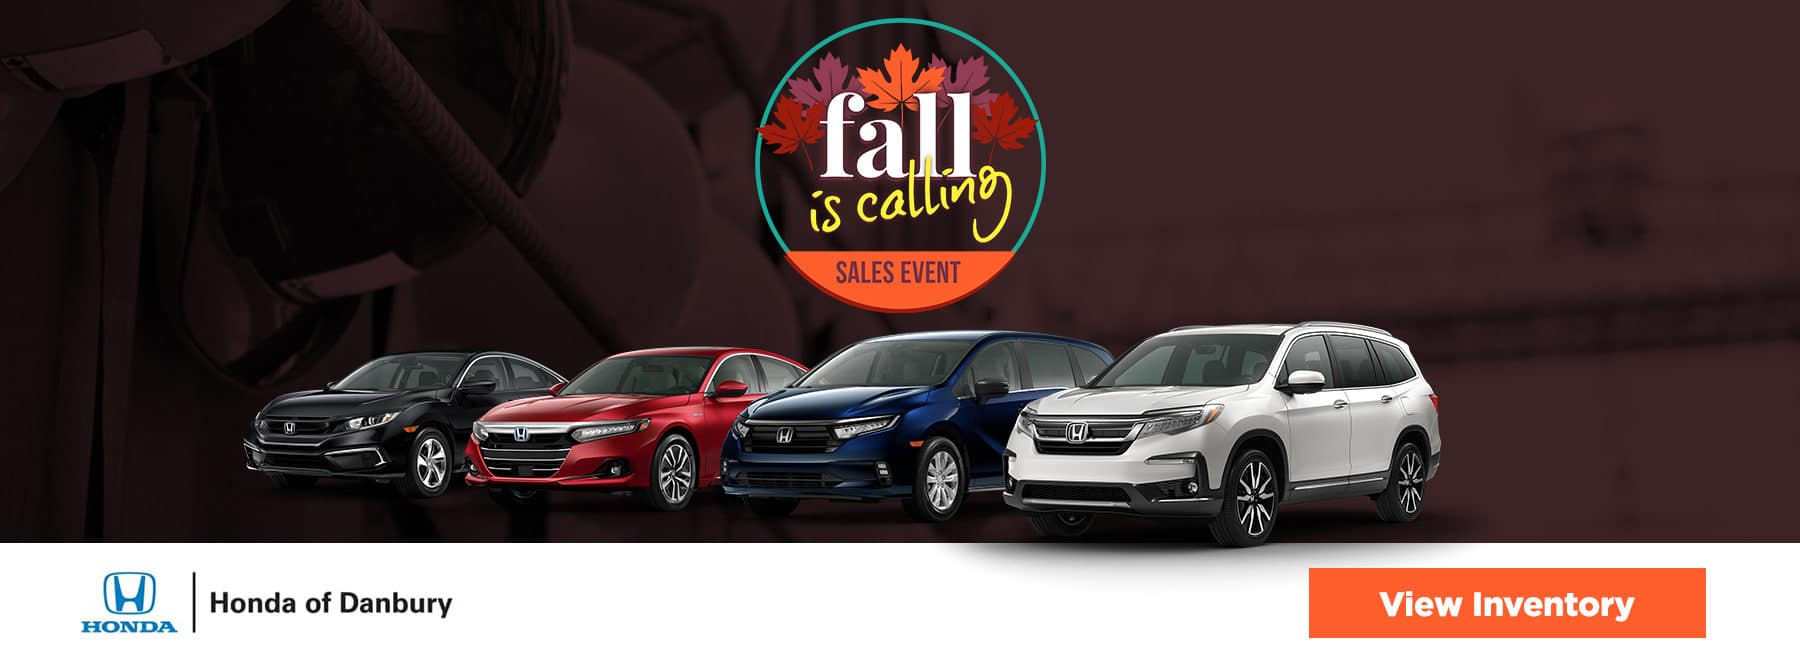 Fall Is Calling Sales Event - View Inventory